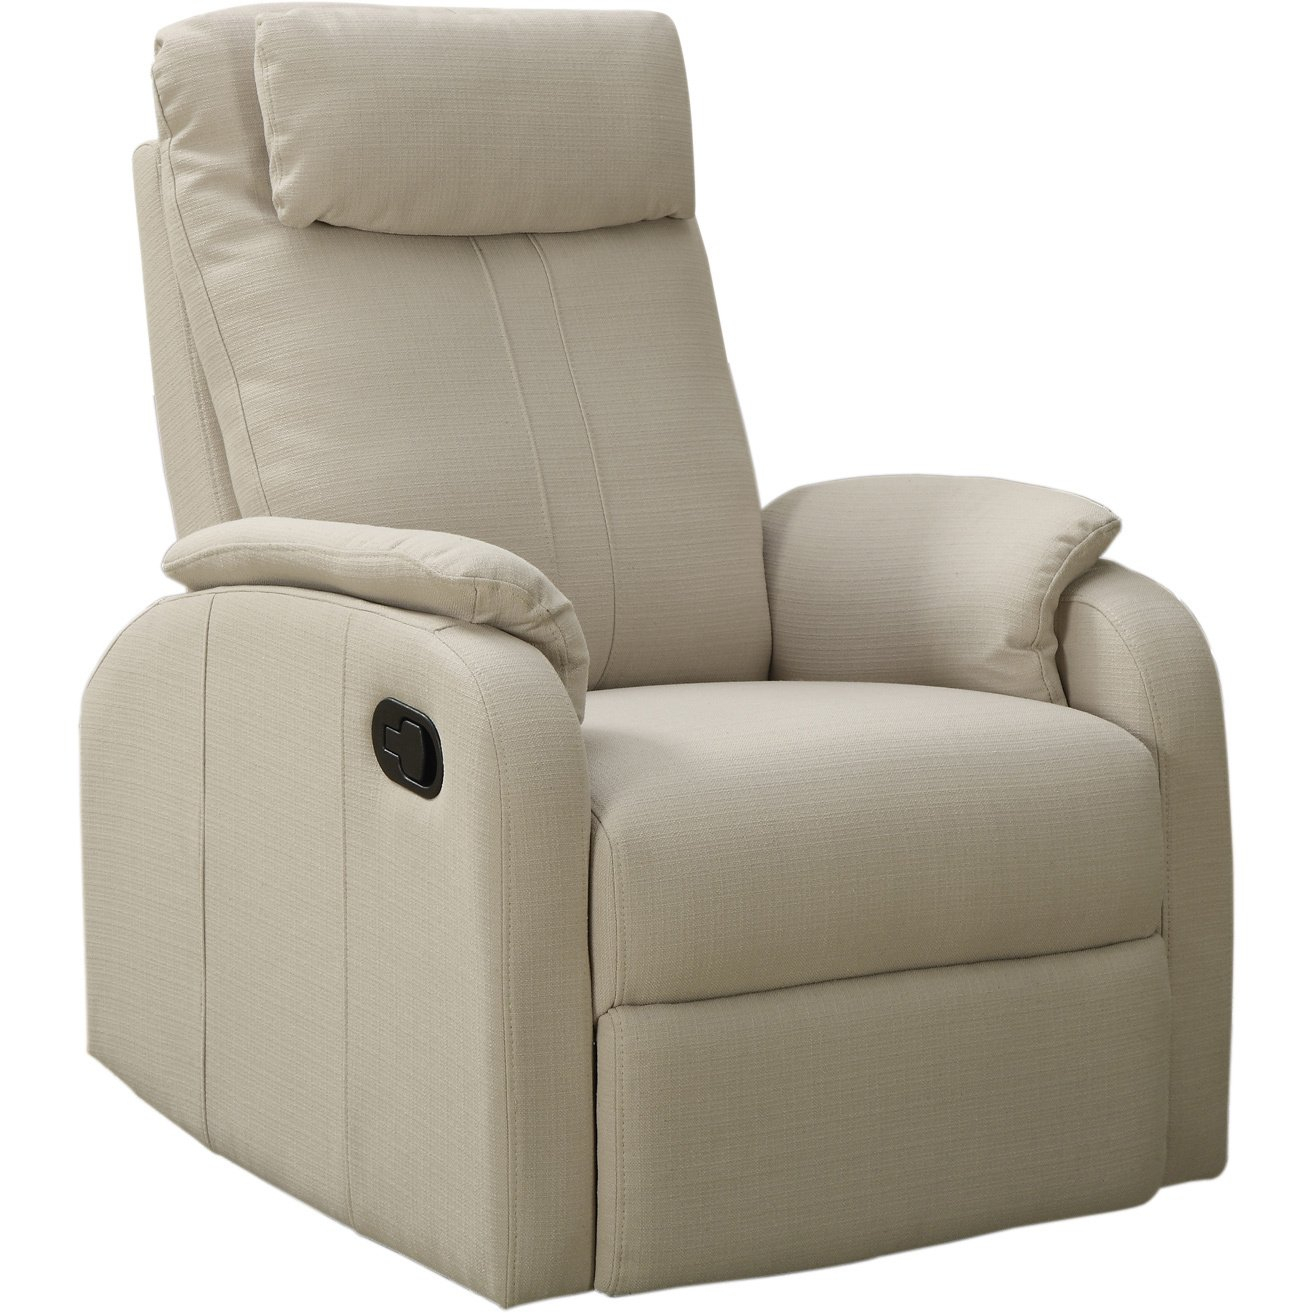 Shop Sand Linen Fabric Swivel Rocker Recliner – Free Shipping Today In Gannon Linen Power Swivel Recliners (View 17 of 25)